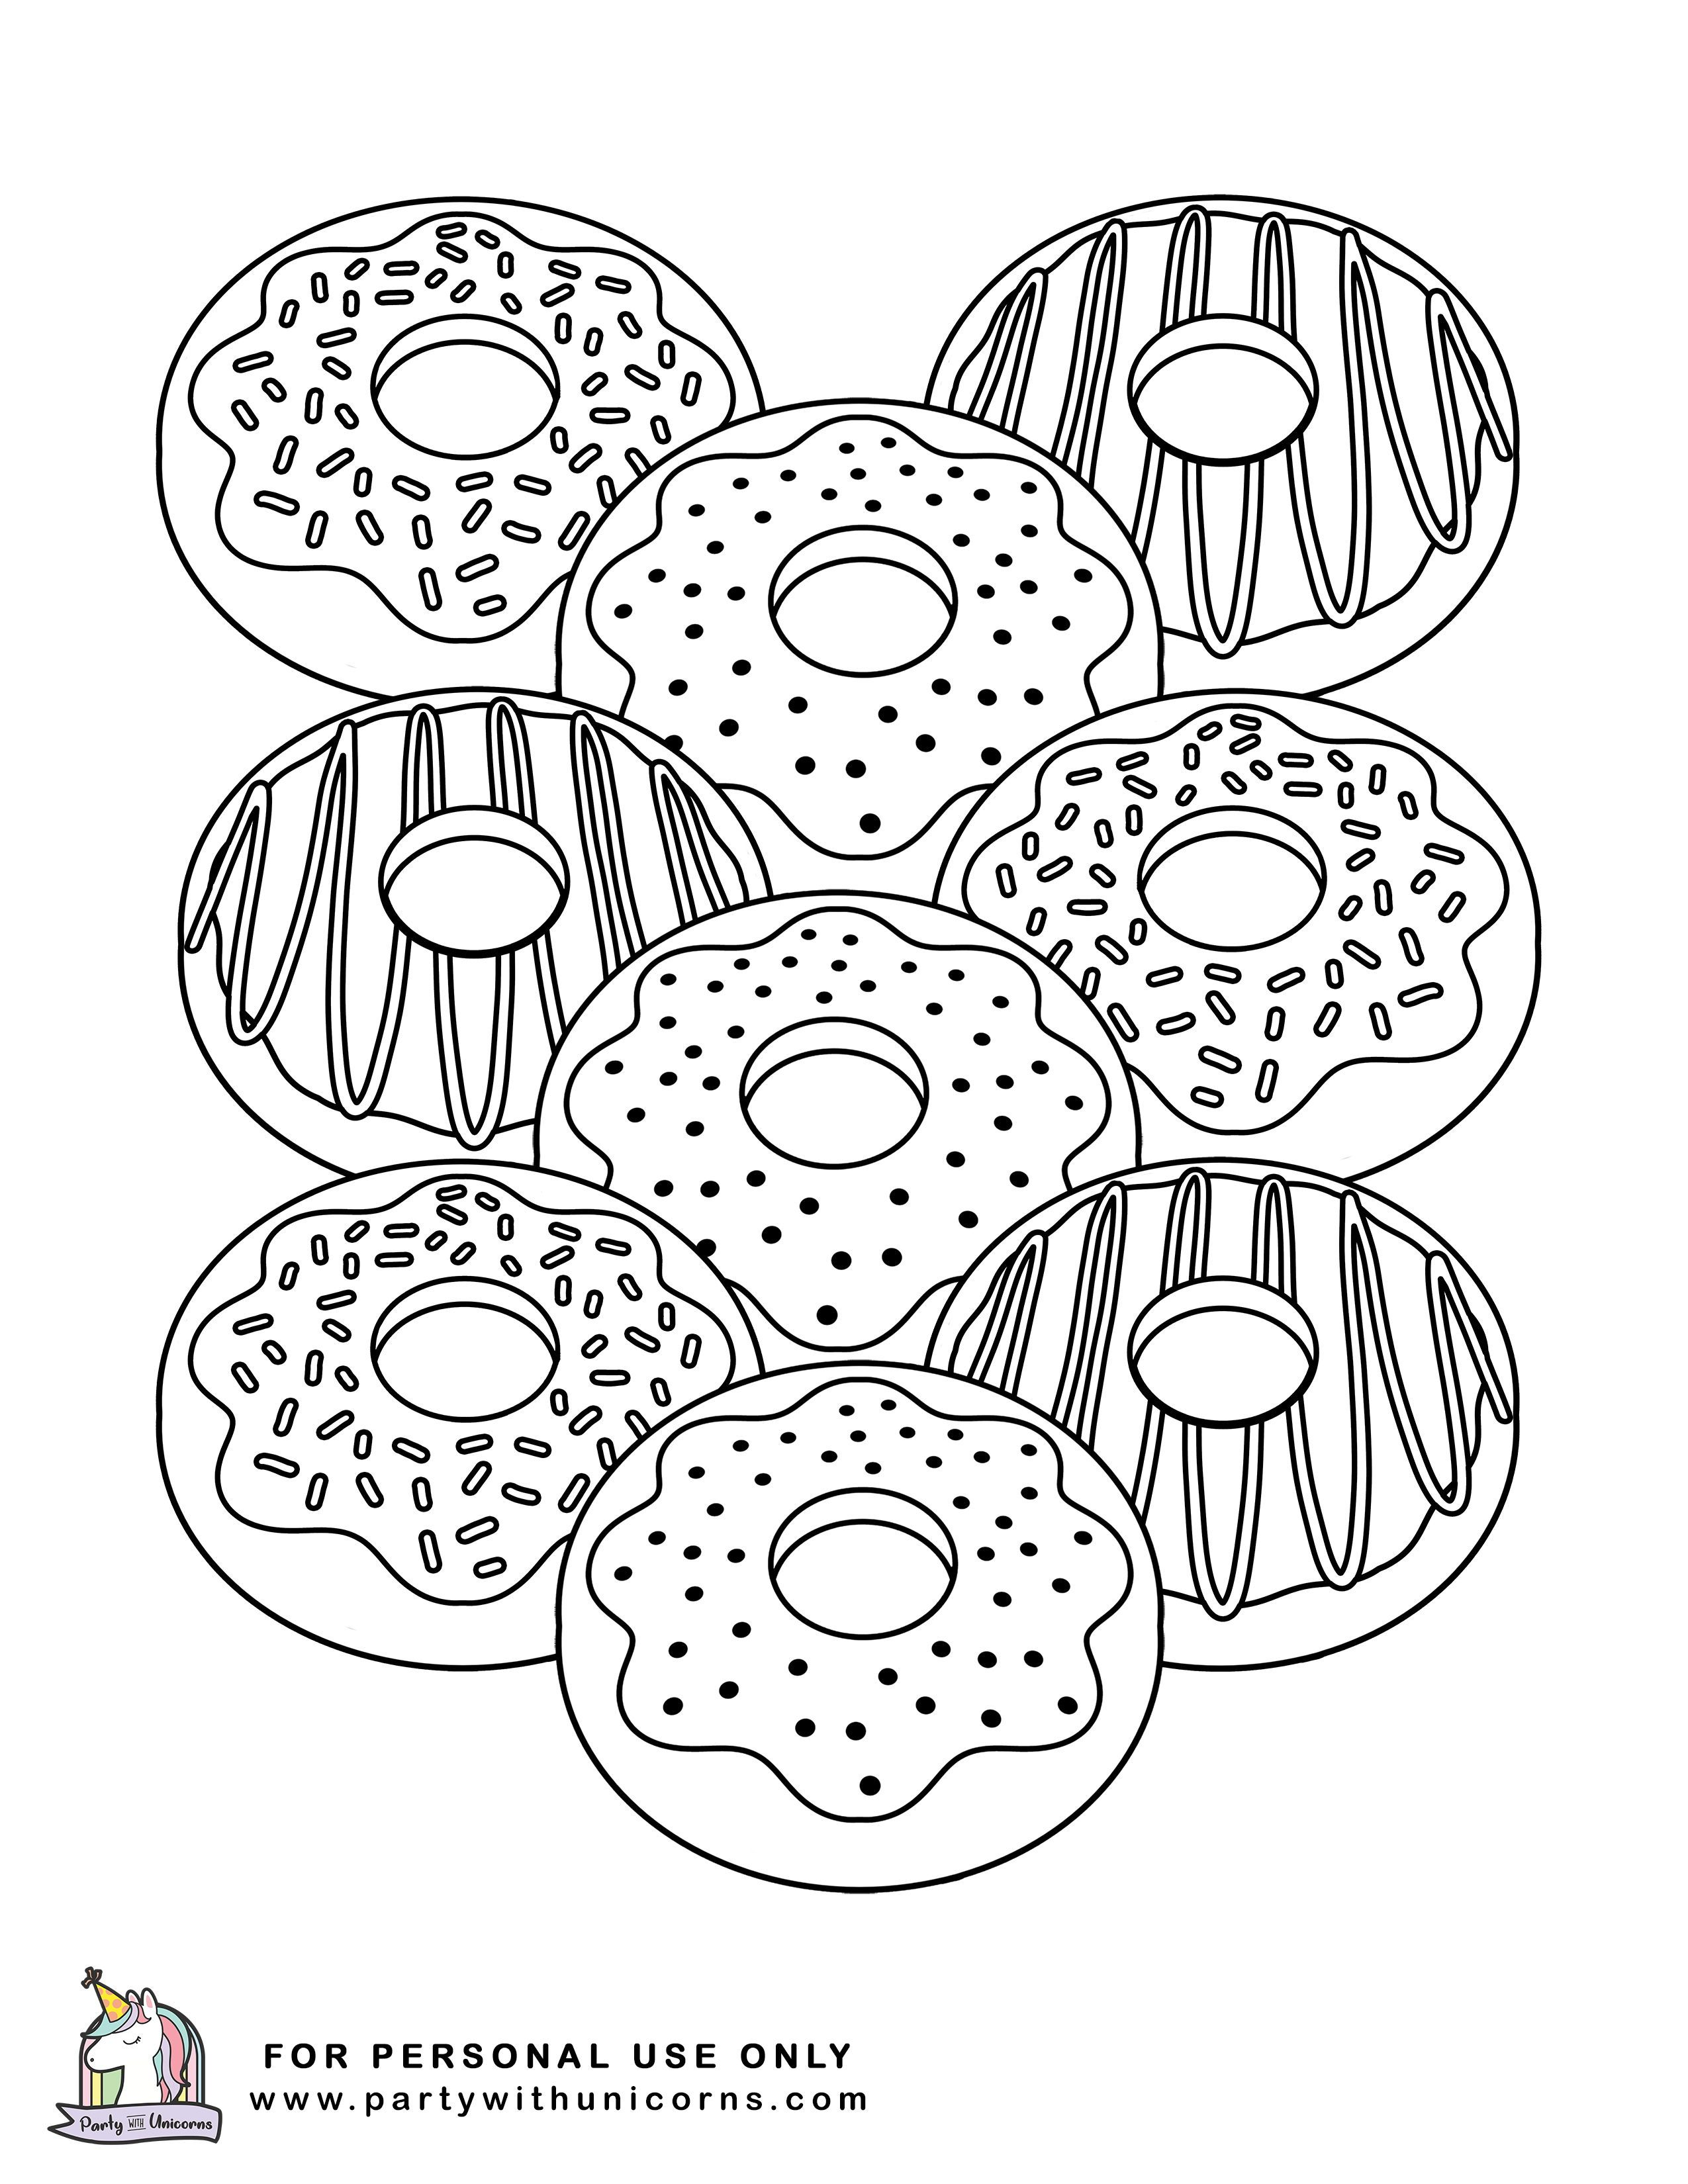 10 Donut Coloring Pages Free Download Donut Coloring Page Coloring Pages Unicorn Coloring Pages